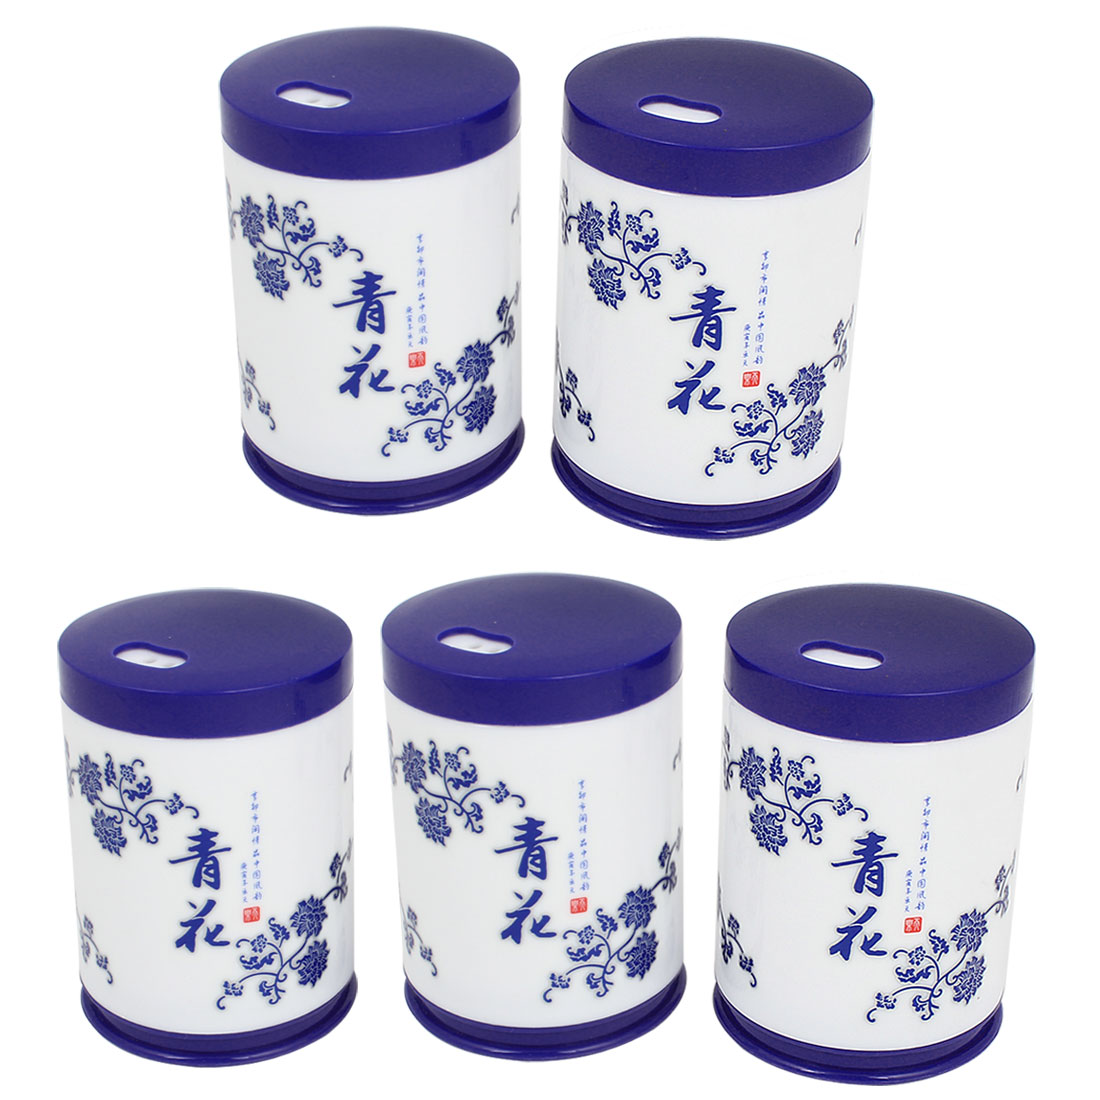 5 Pcs Blue White Cylinder Shaped Floral Pattern Plastic Toothpick Holder